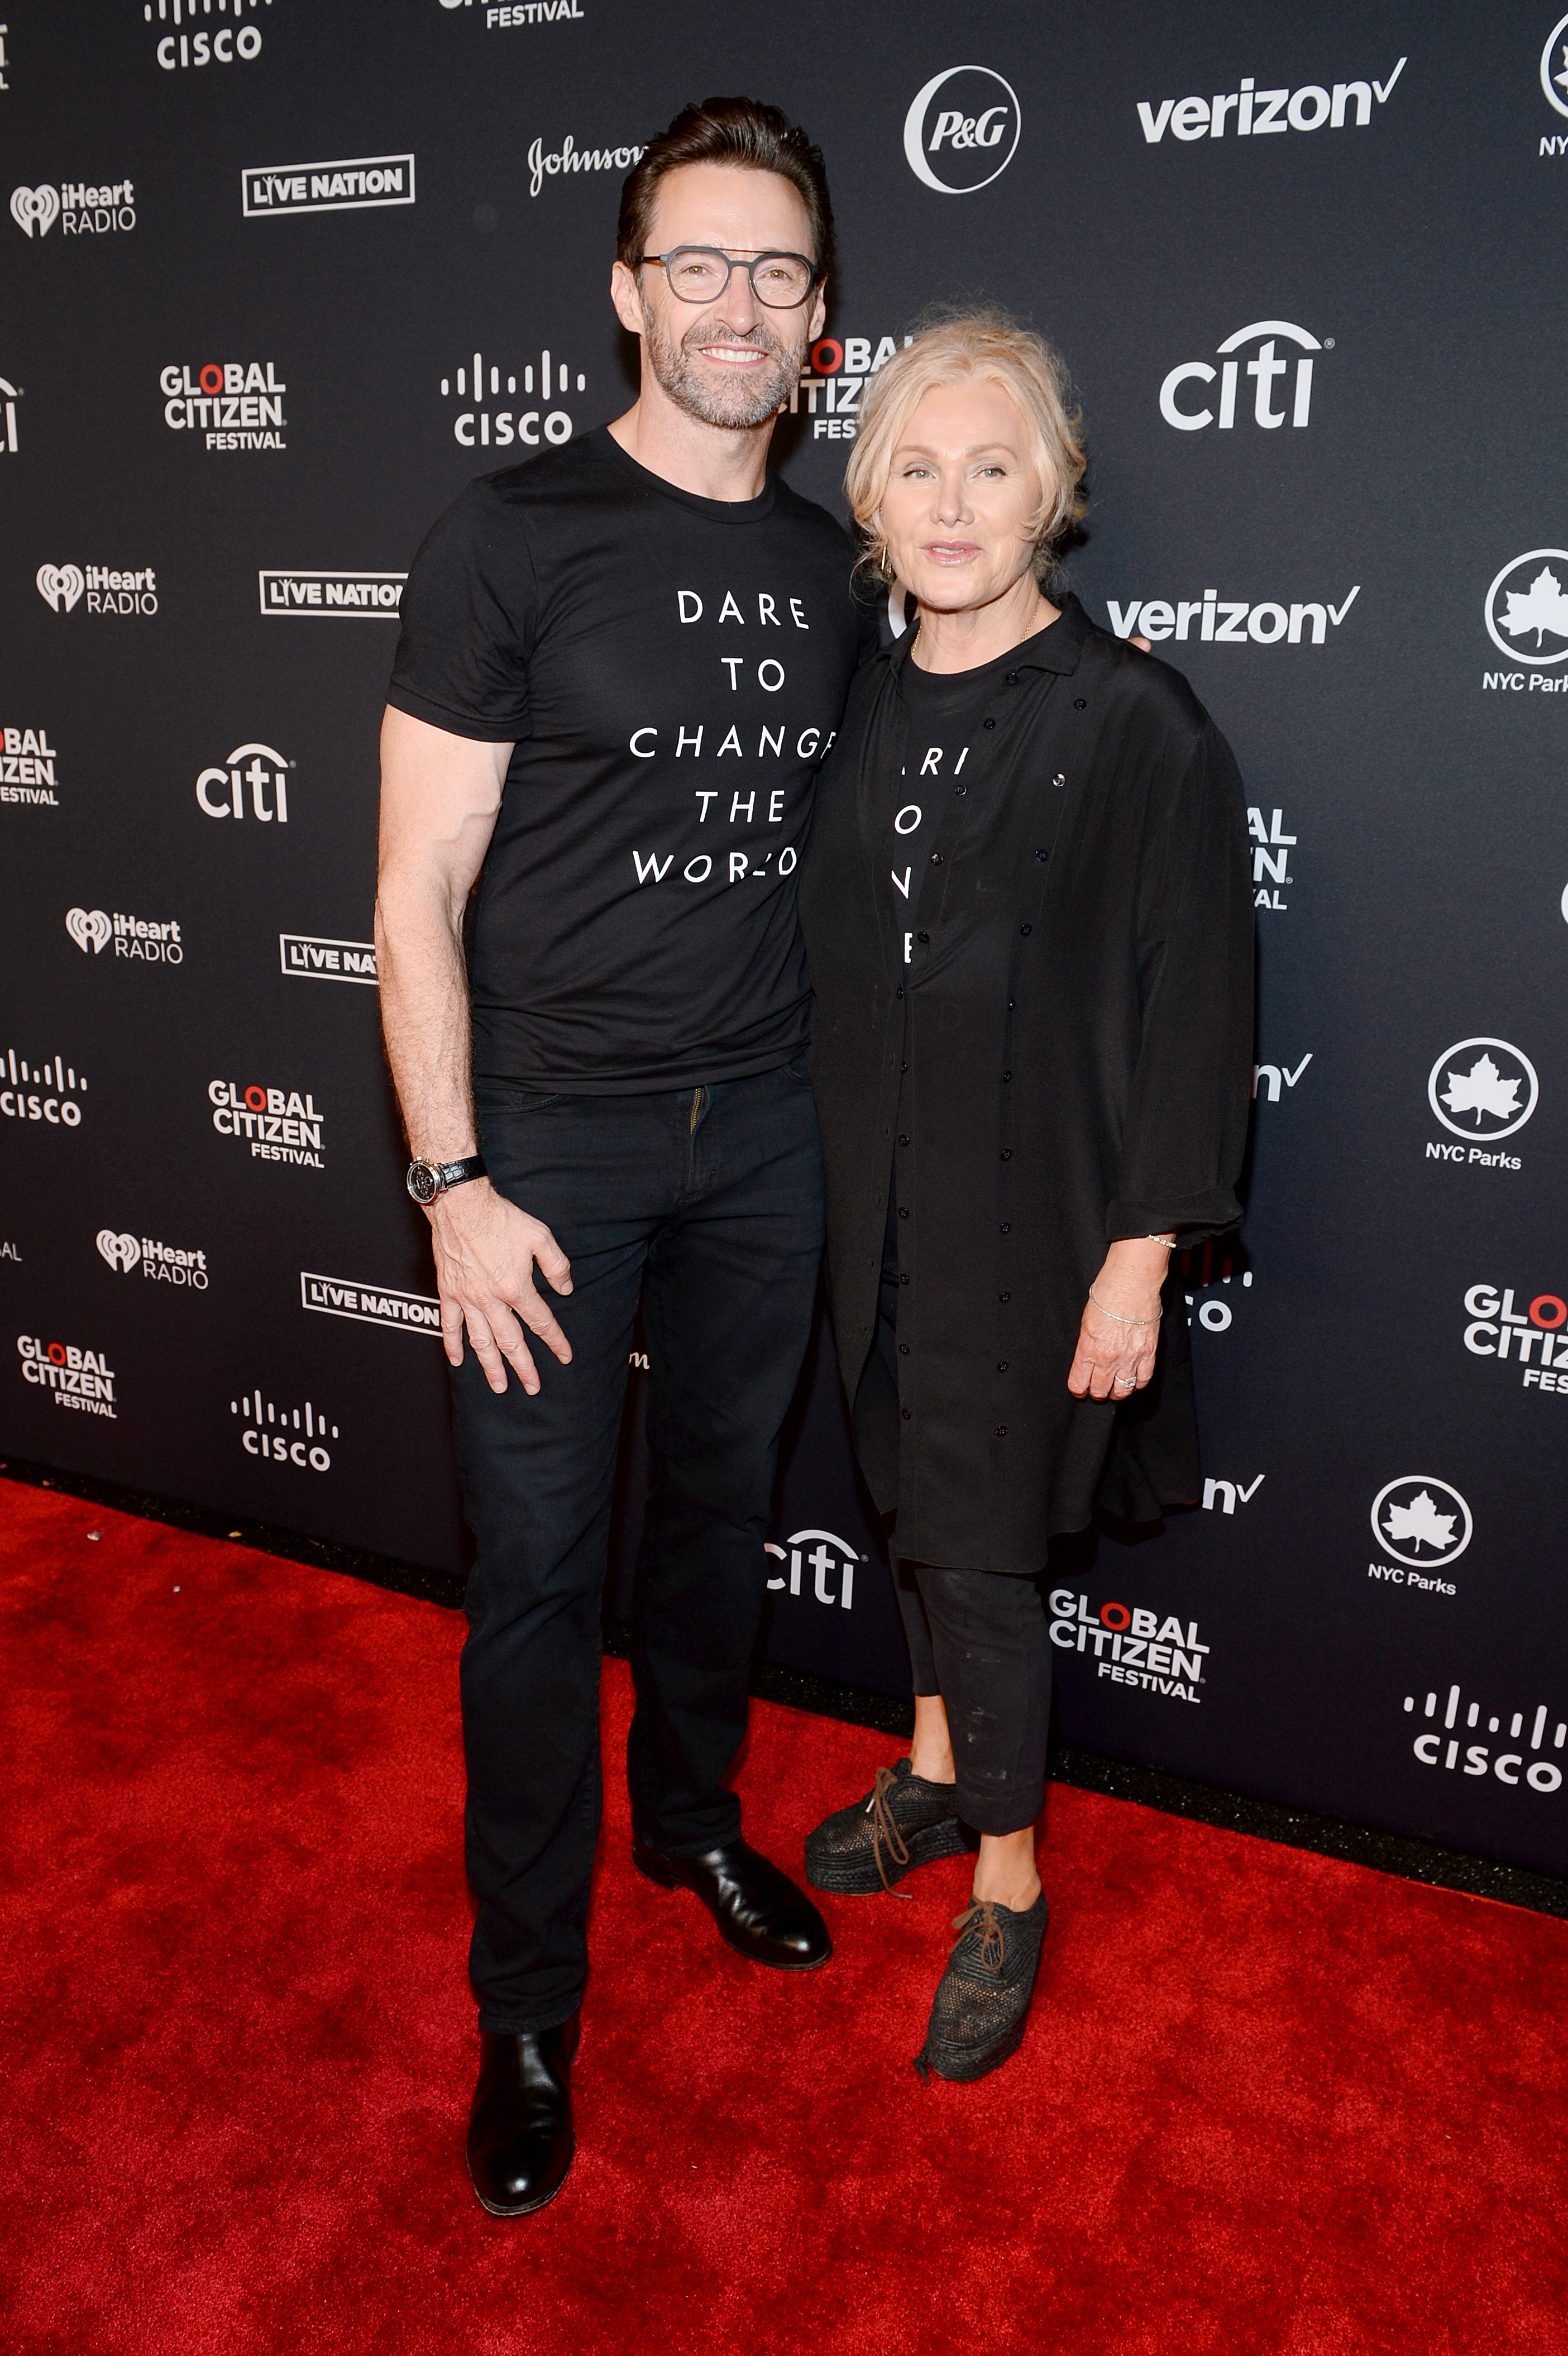 NEW YORK, NEW YORK - SEPTEMBER 28: Hugh Jackman and Deborra-lee Furness attend the 2019 Global Citizen Festival: Power The Movement in Central Park on September 28, 2019 in New York City. (Photo by Noam Galai/Getty Images for Global Citizen)